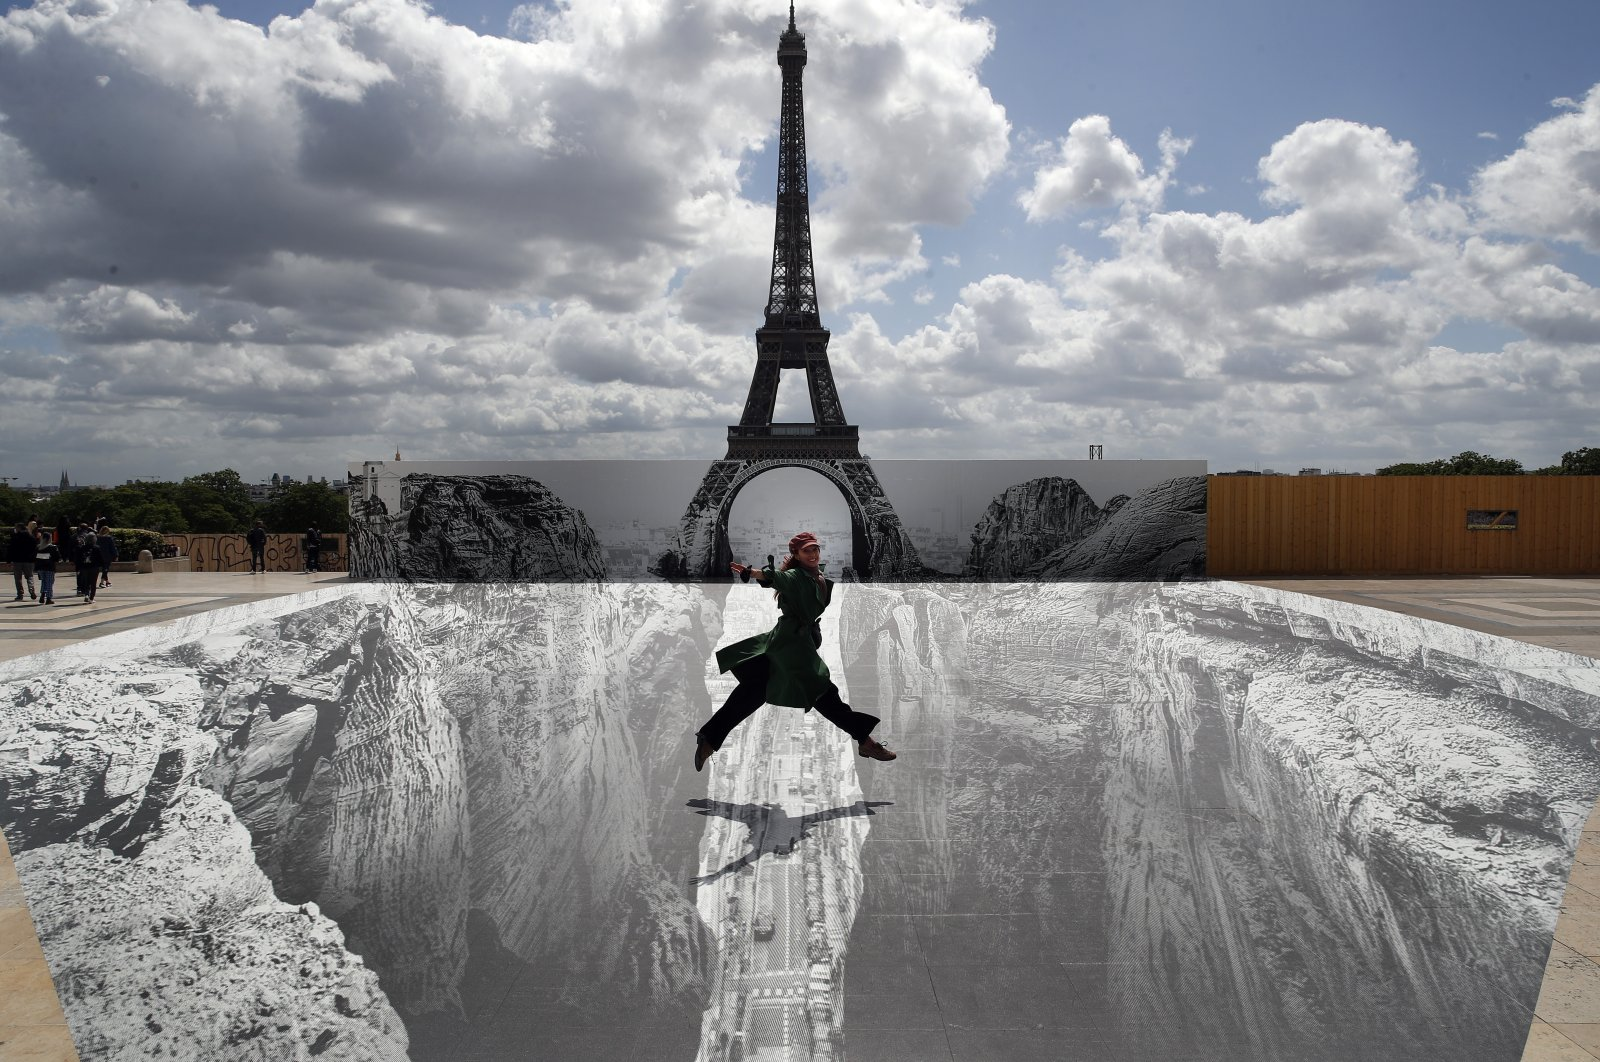 A woman jumps at Trocadero square in front of the Eiffel Tower where French artist and photographer JR set his artwork, in Paris, France, May 21, 2021. (AP Photo)